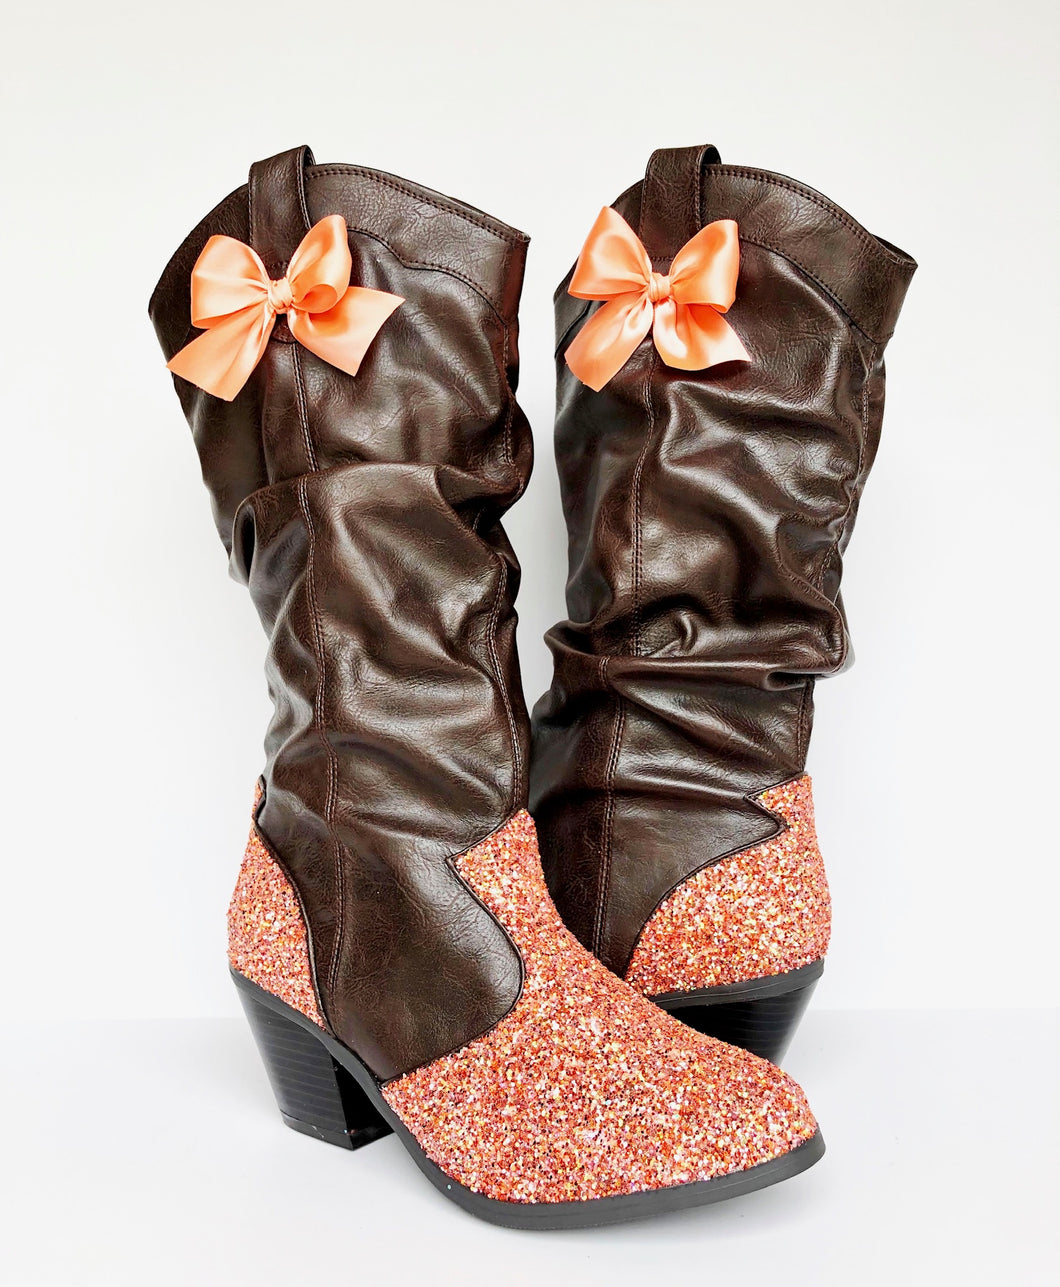 Glitter Cowboy Boots - Sparkly Coral Brown Cowgirl Boots